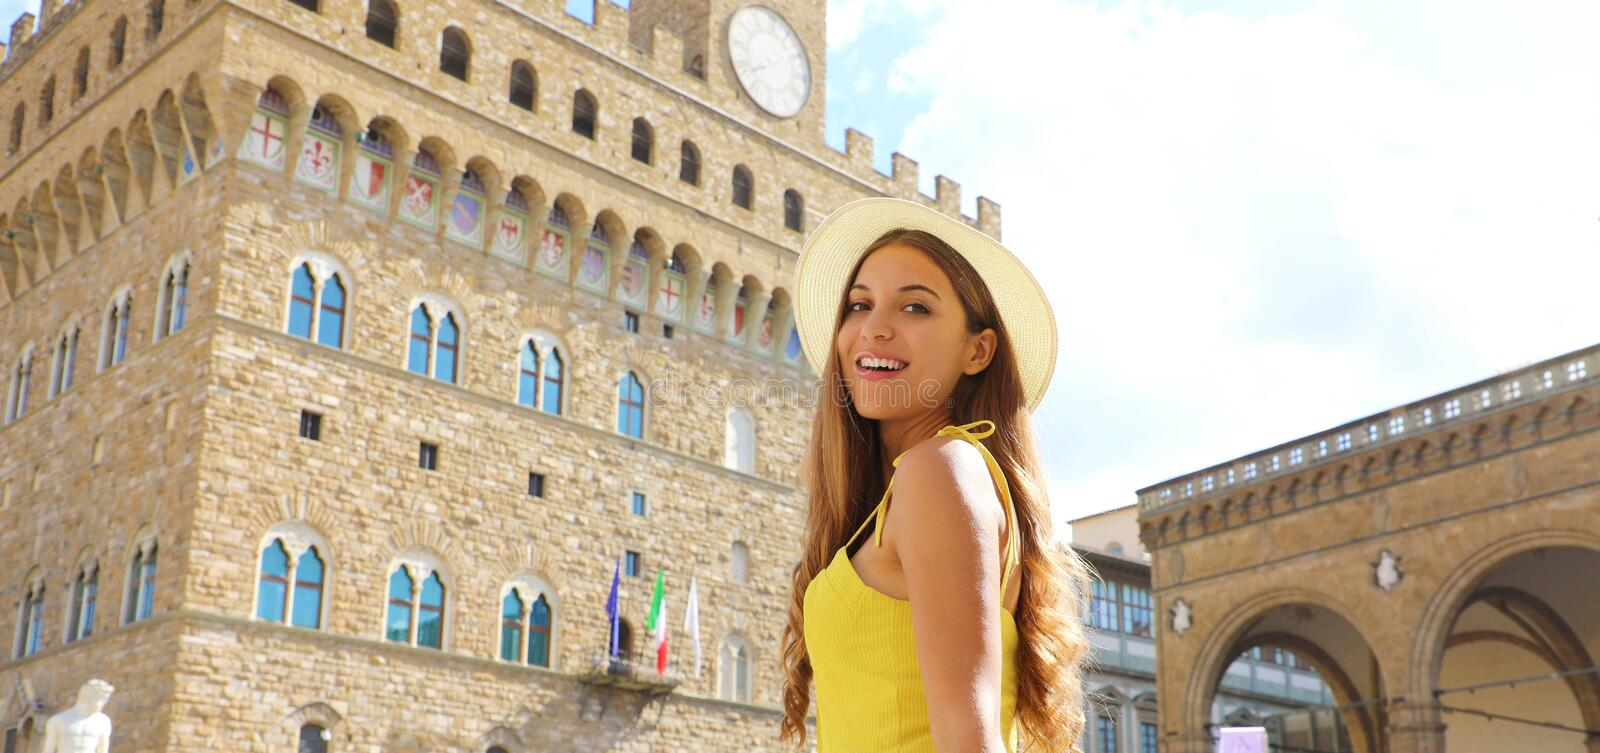 Beautiful tourist girl in Florence with Palazzo Vecchio palace  on the background. Panoramic banner view of young woman in her stock photo